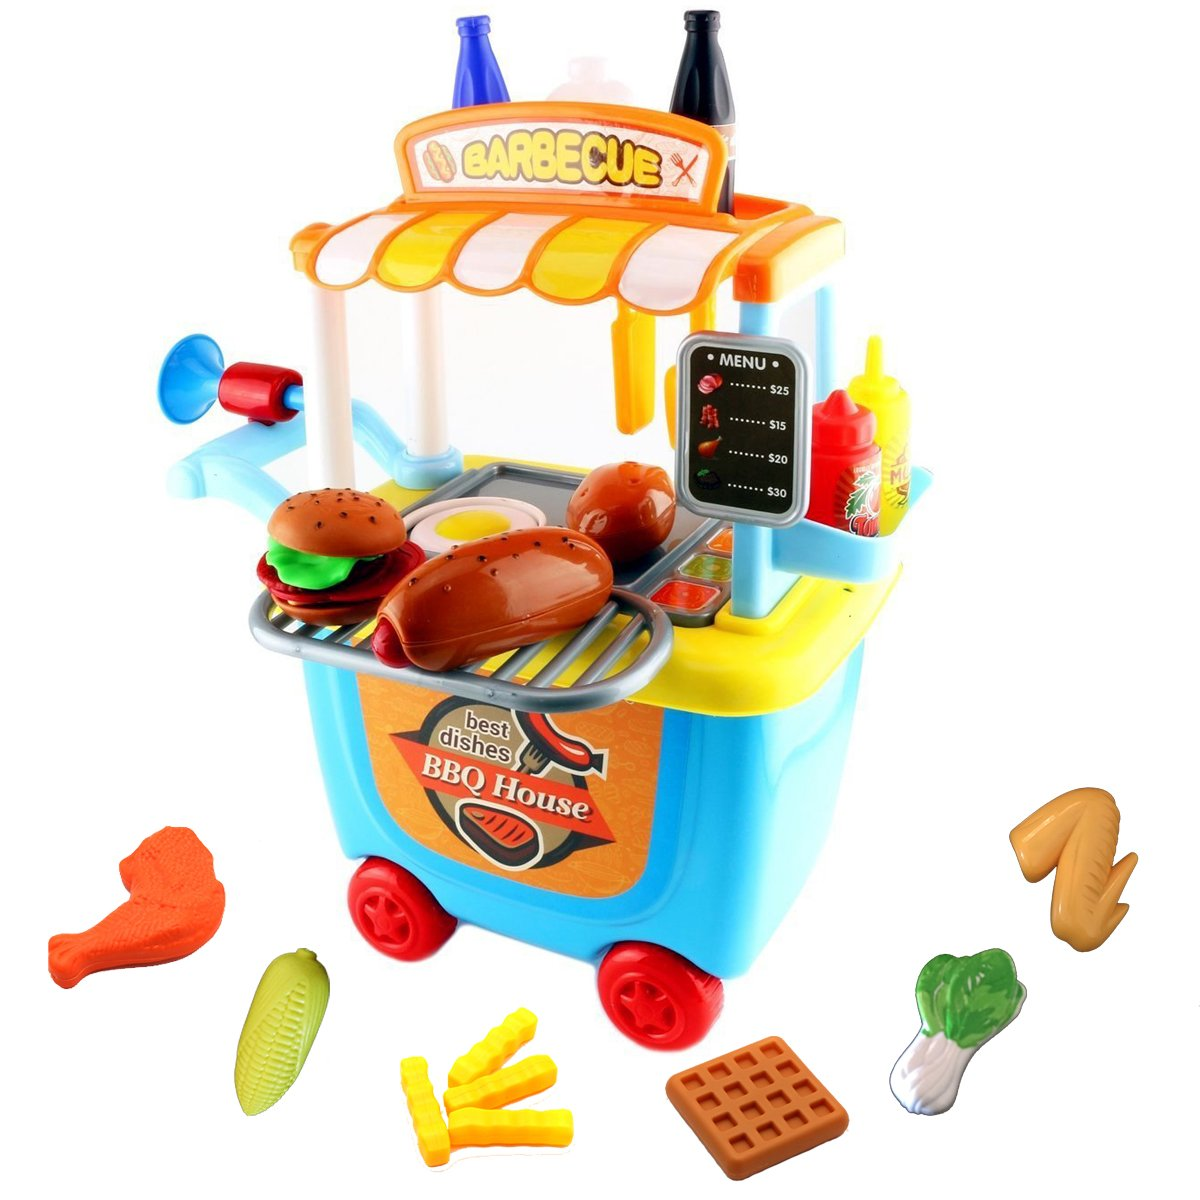 WenToyce Pretend Play BBQ Playset, Grill Set for Kids, BBQ Plays and Travel Set with Carrying Case for All Boys and Girls, 41pcs/Set by WenToyce